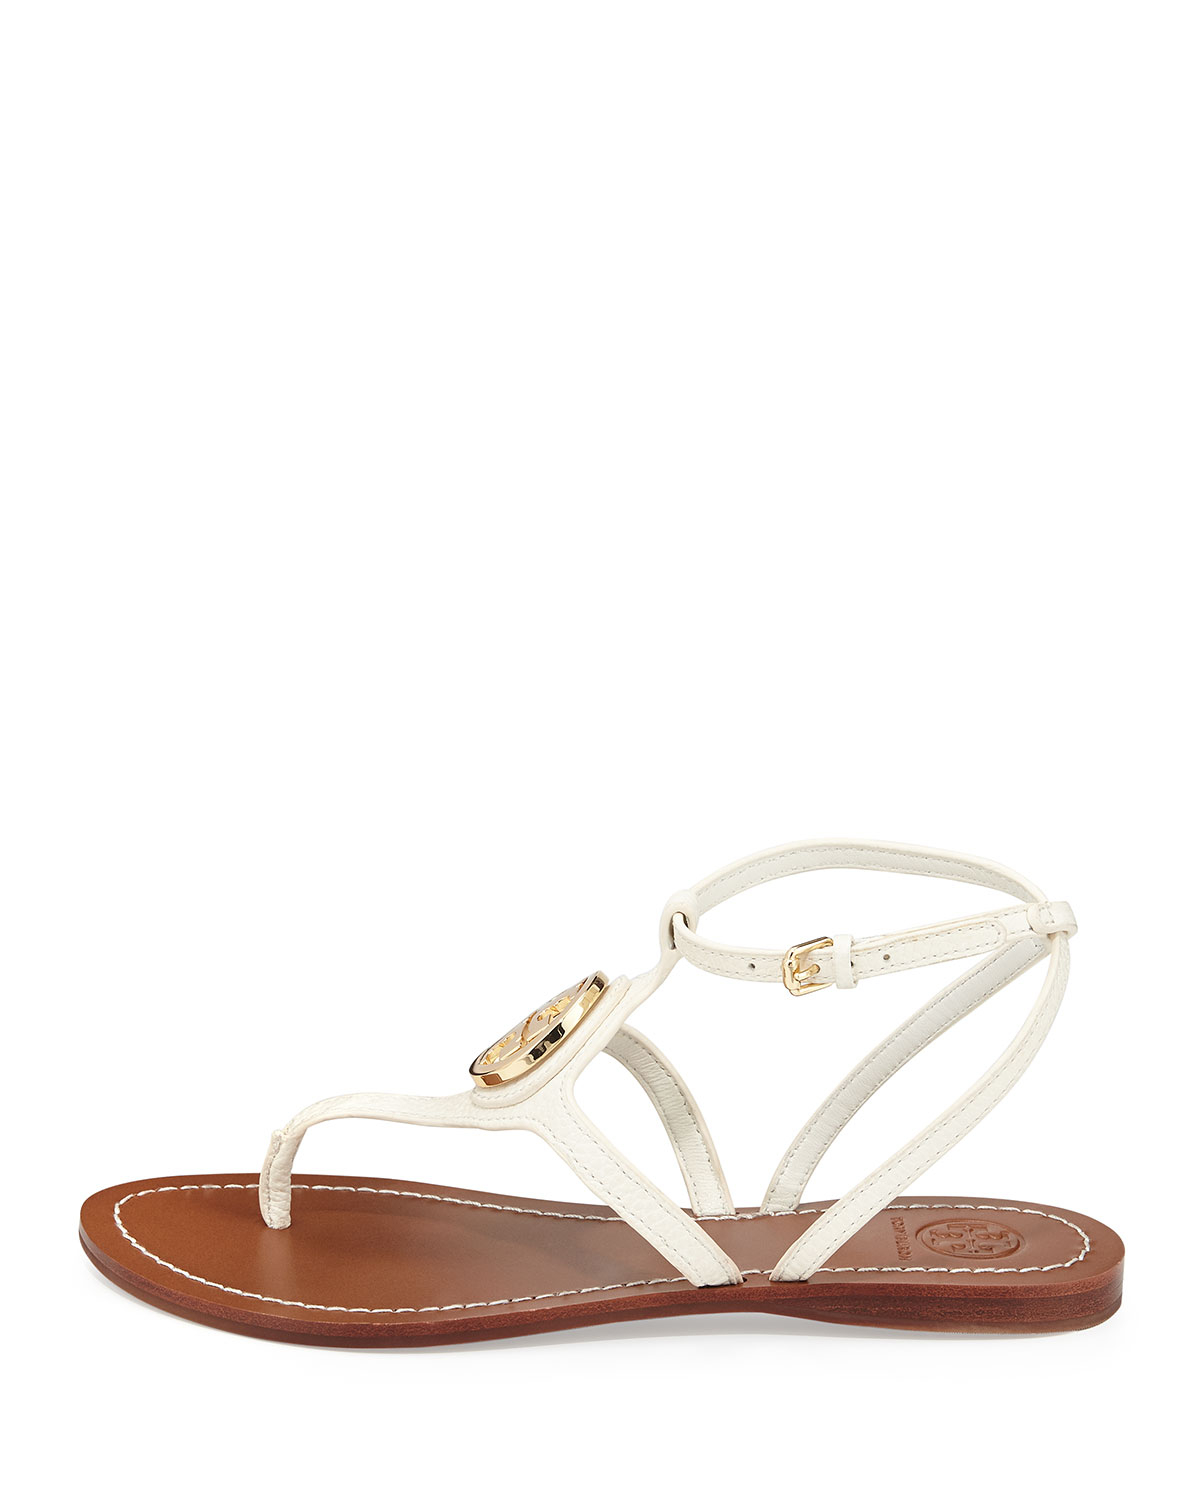 8e85f1e2f Lyst - Tory Burch Leticia Logo Thong Sandal Ivory in White